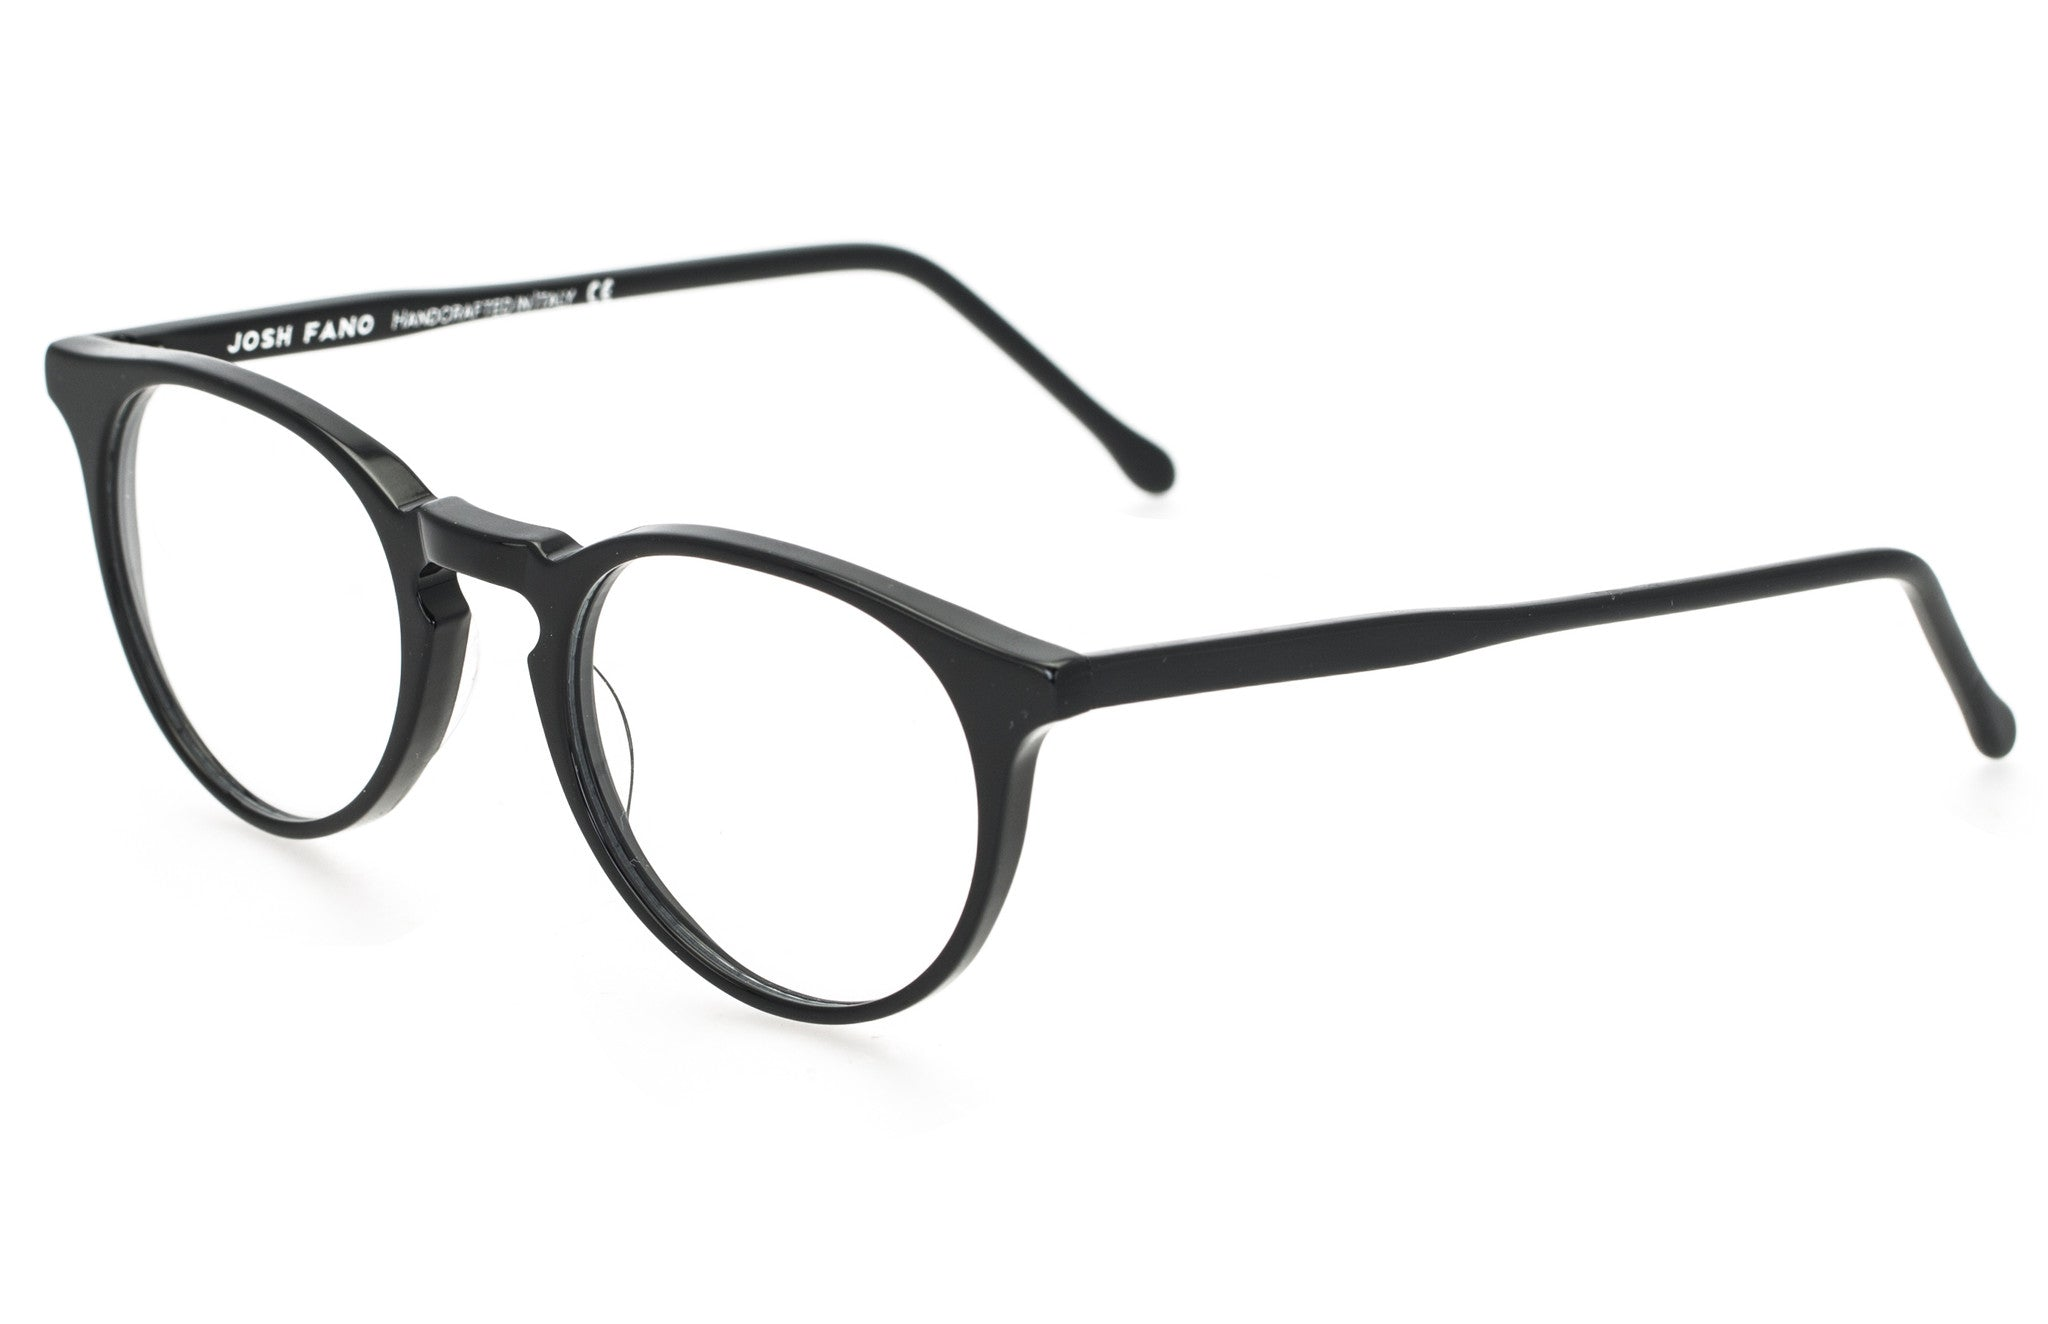 Mayfair | Black - Josh Fano Prescription Glasses Uk